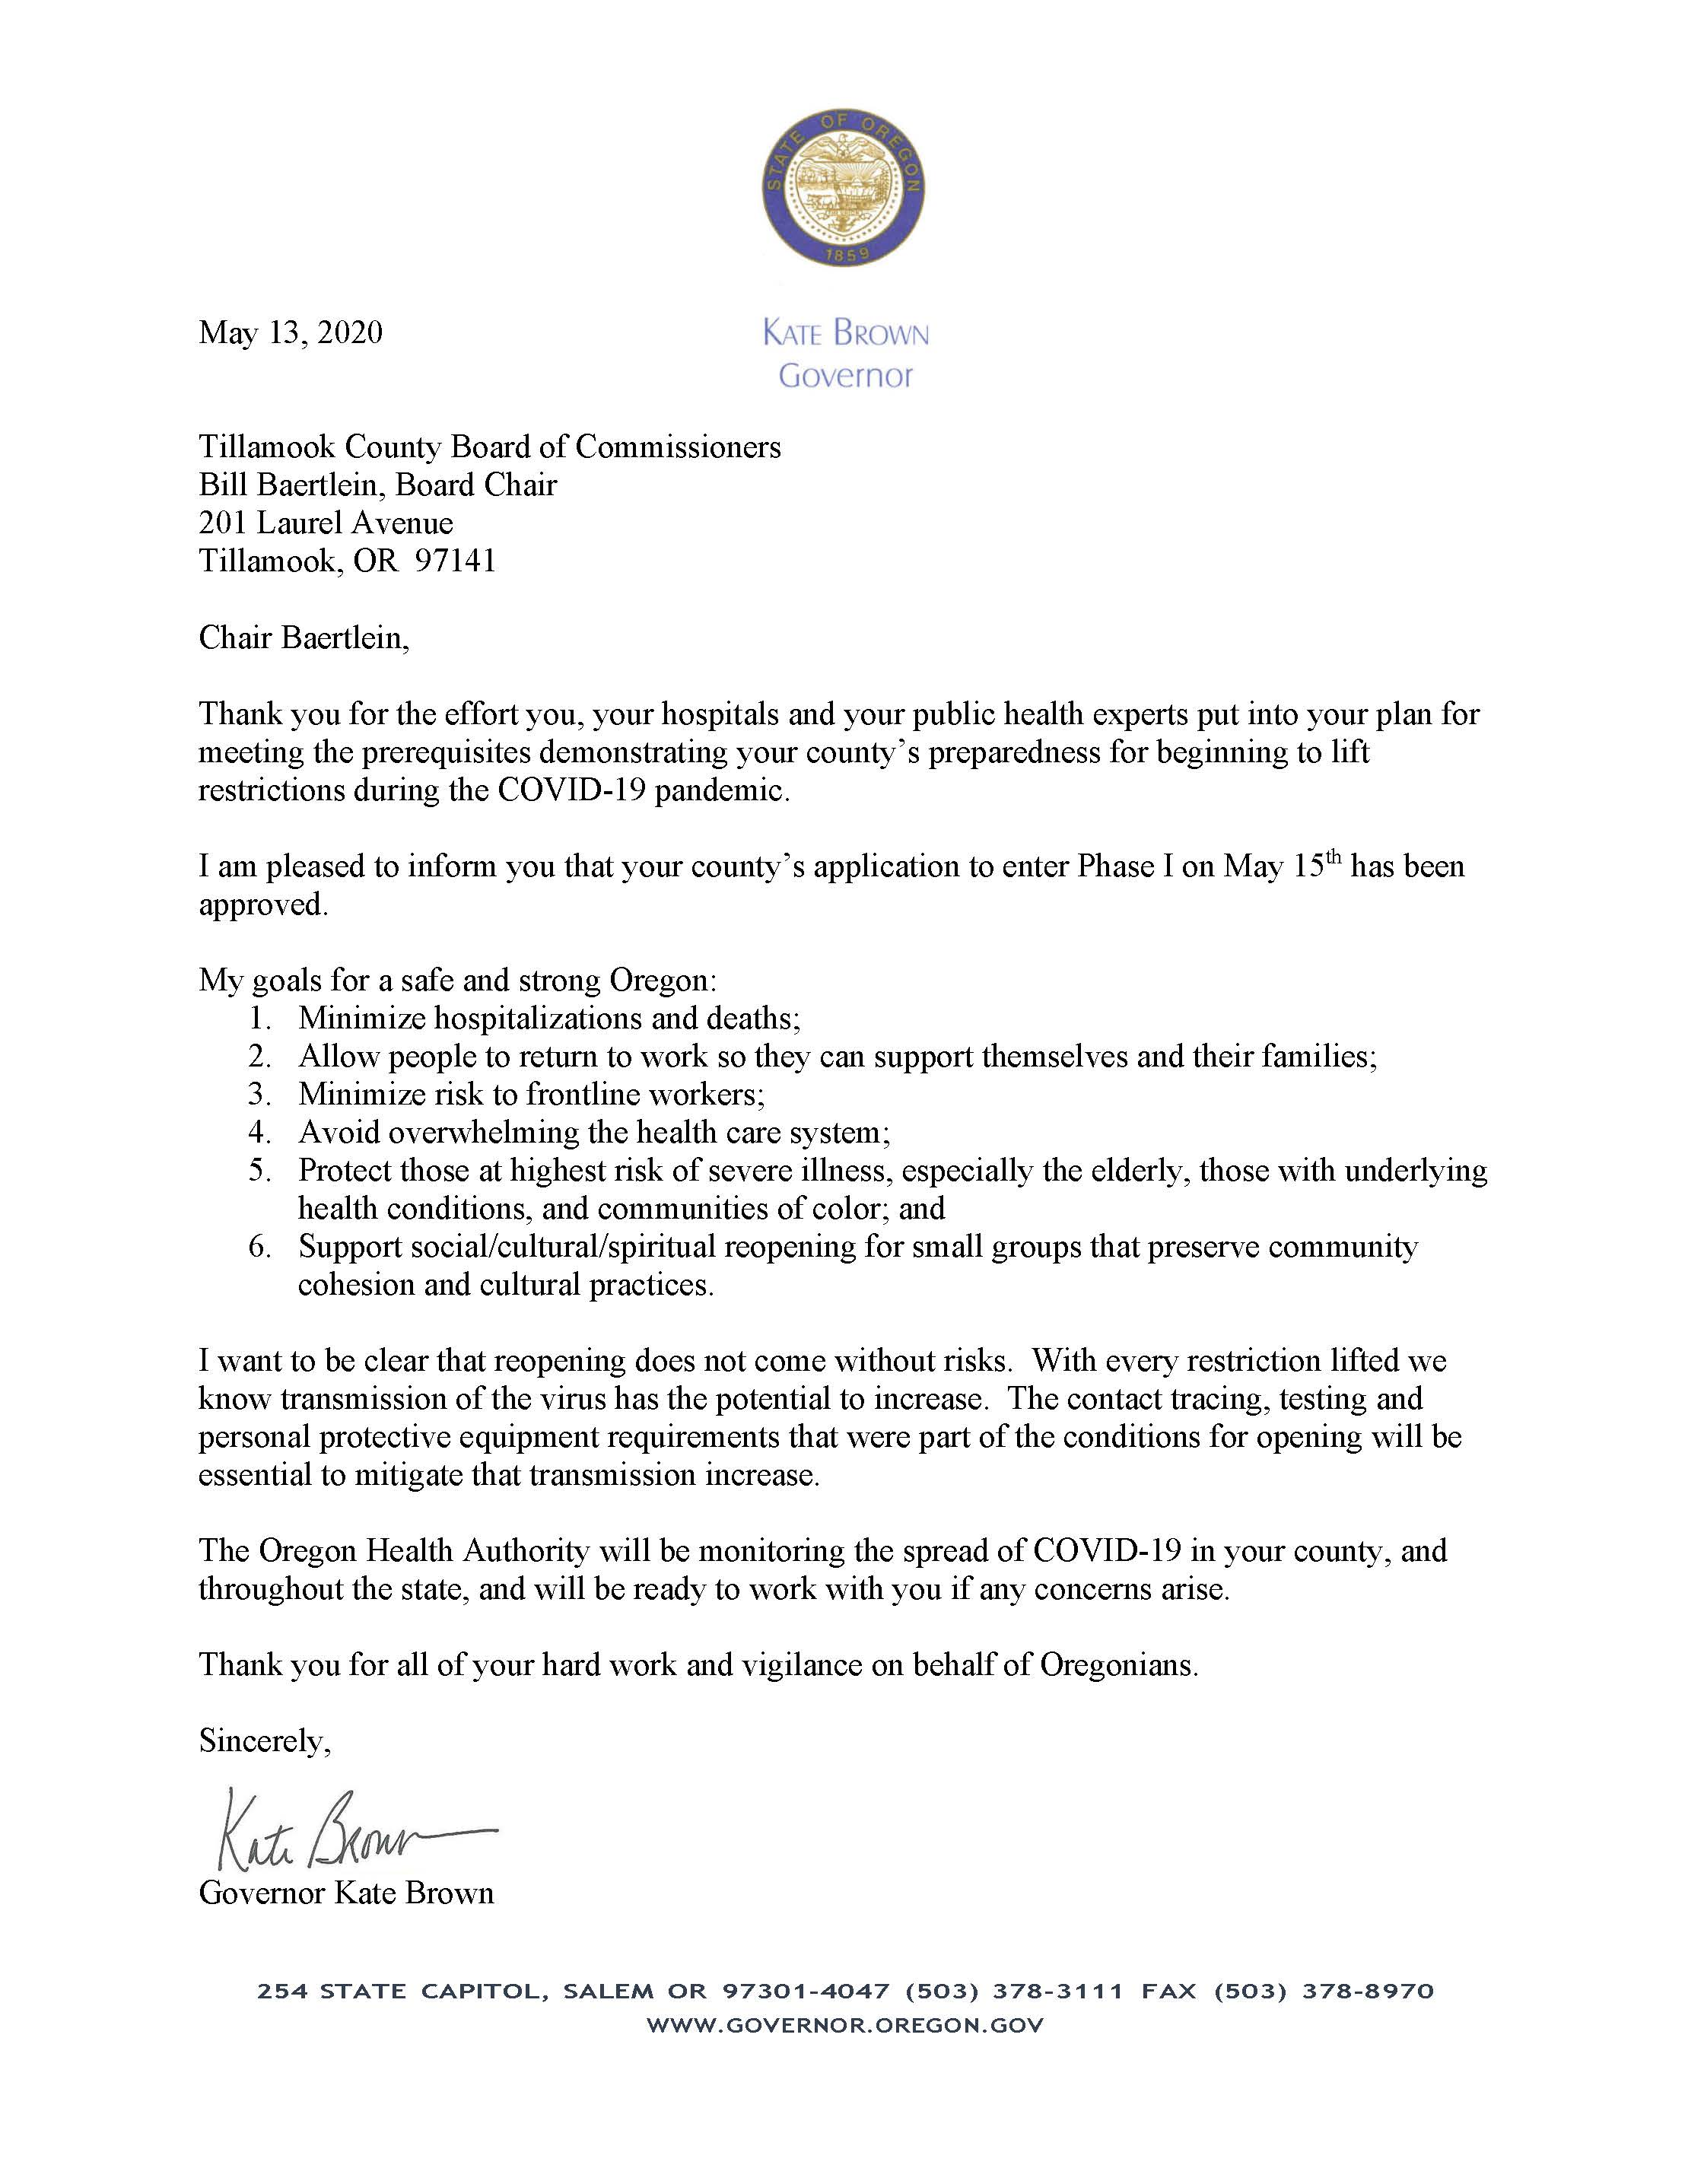 05.13.20_letter to Tillamook County, approval phase one